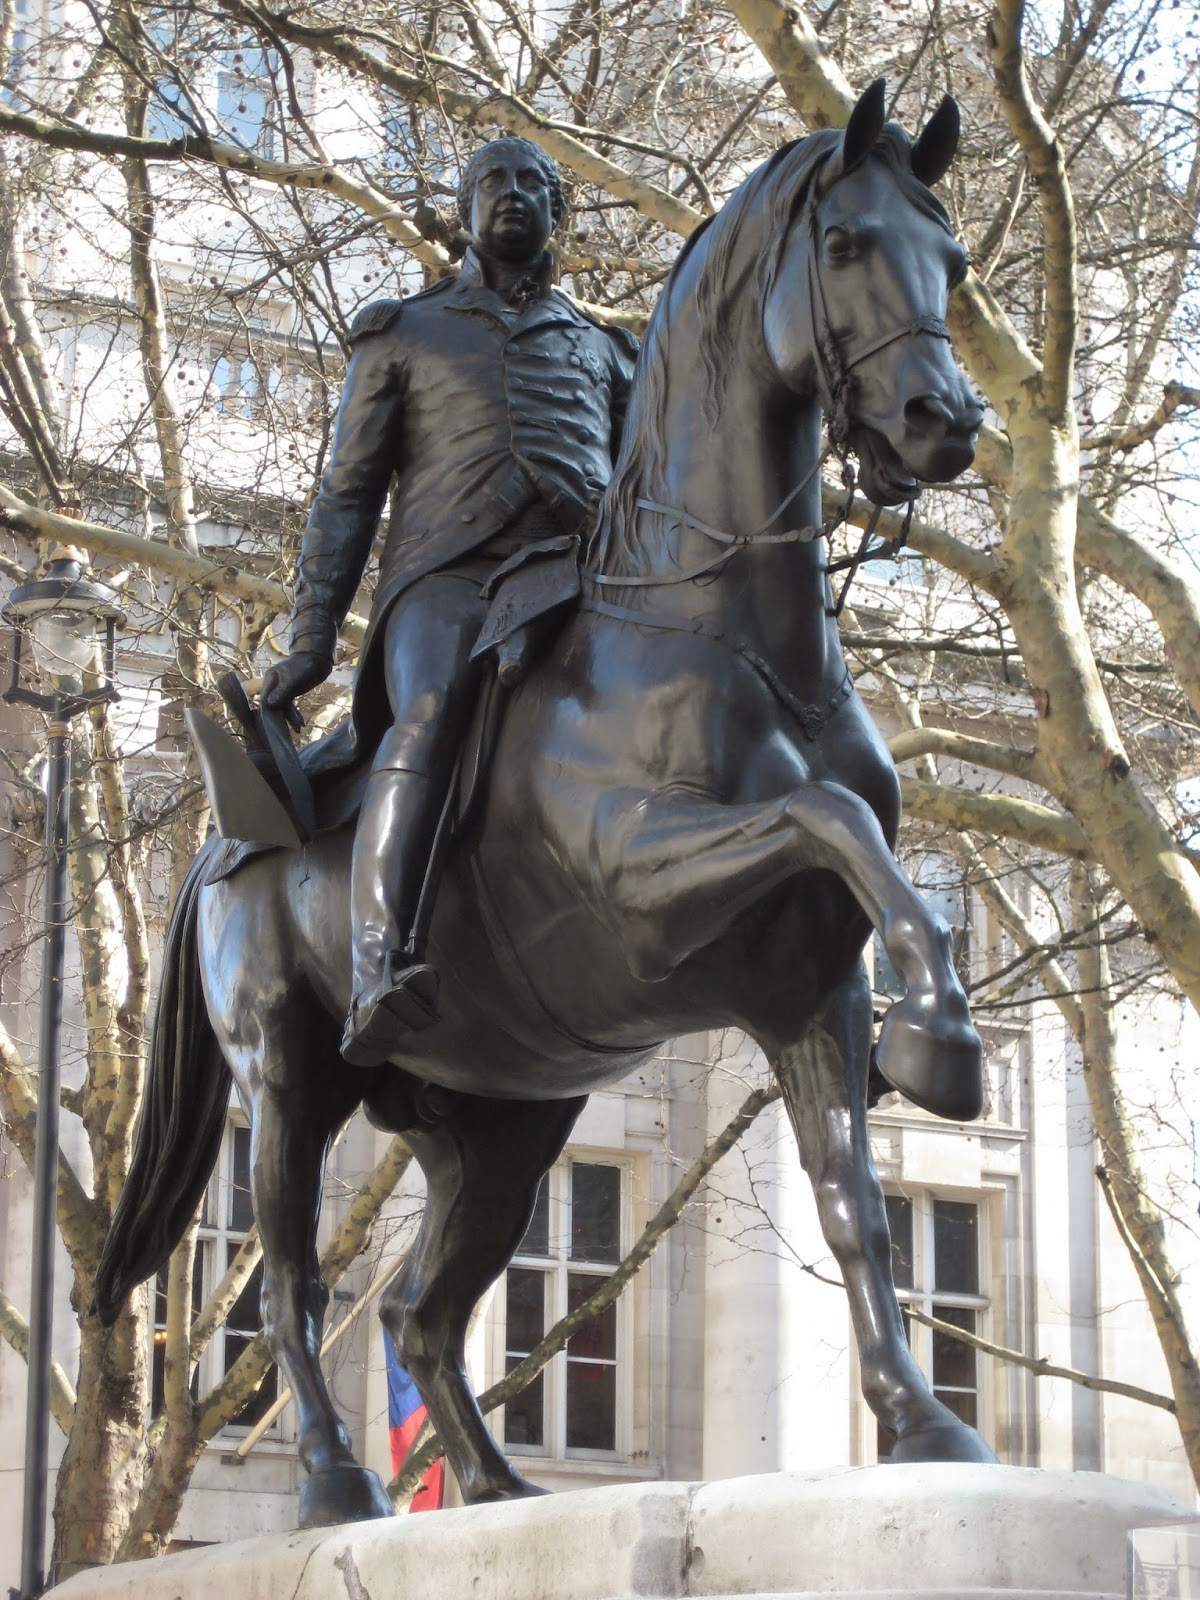 Statue of George III on horseback, Cockspur Street, London